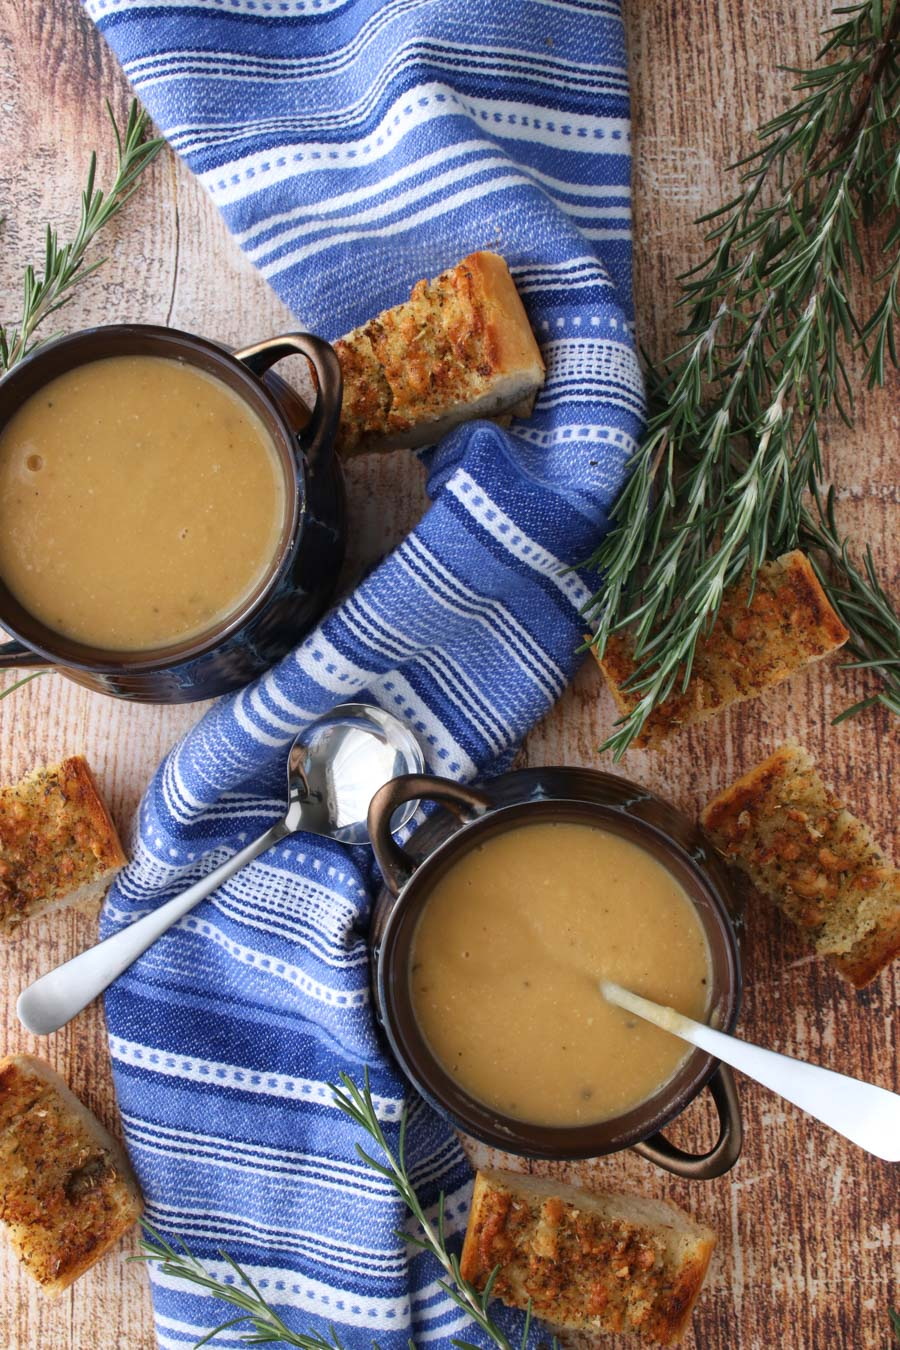 2 bowls of soup with a blue napkin and fresh rosemary sprigs and garlic toast